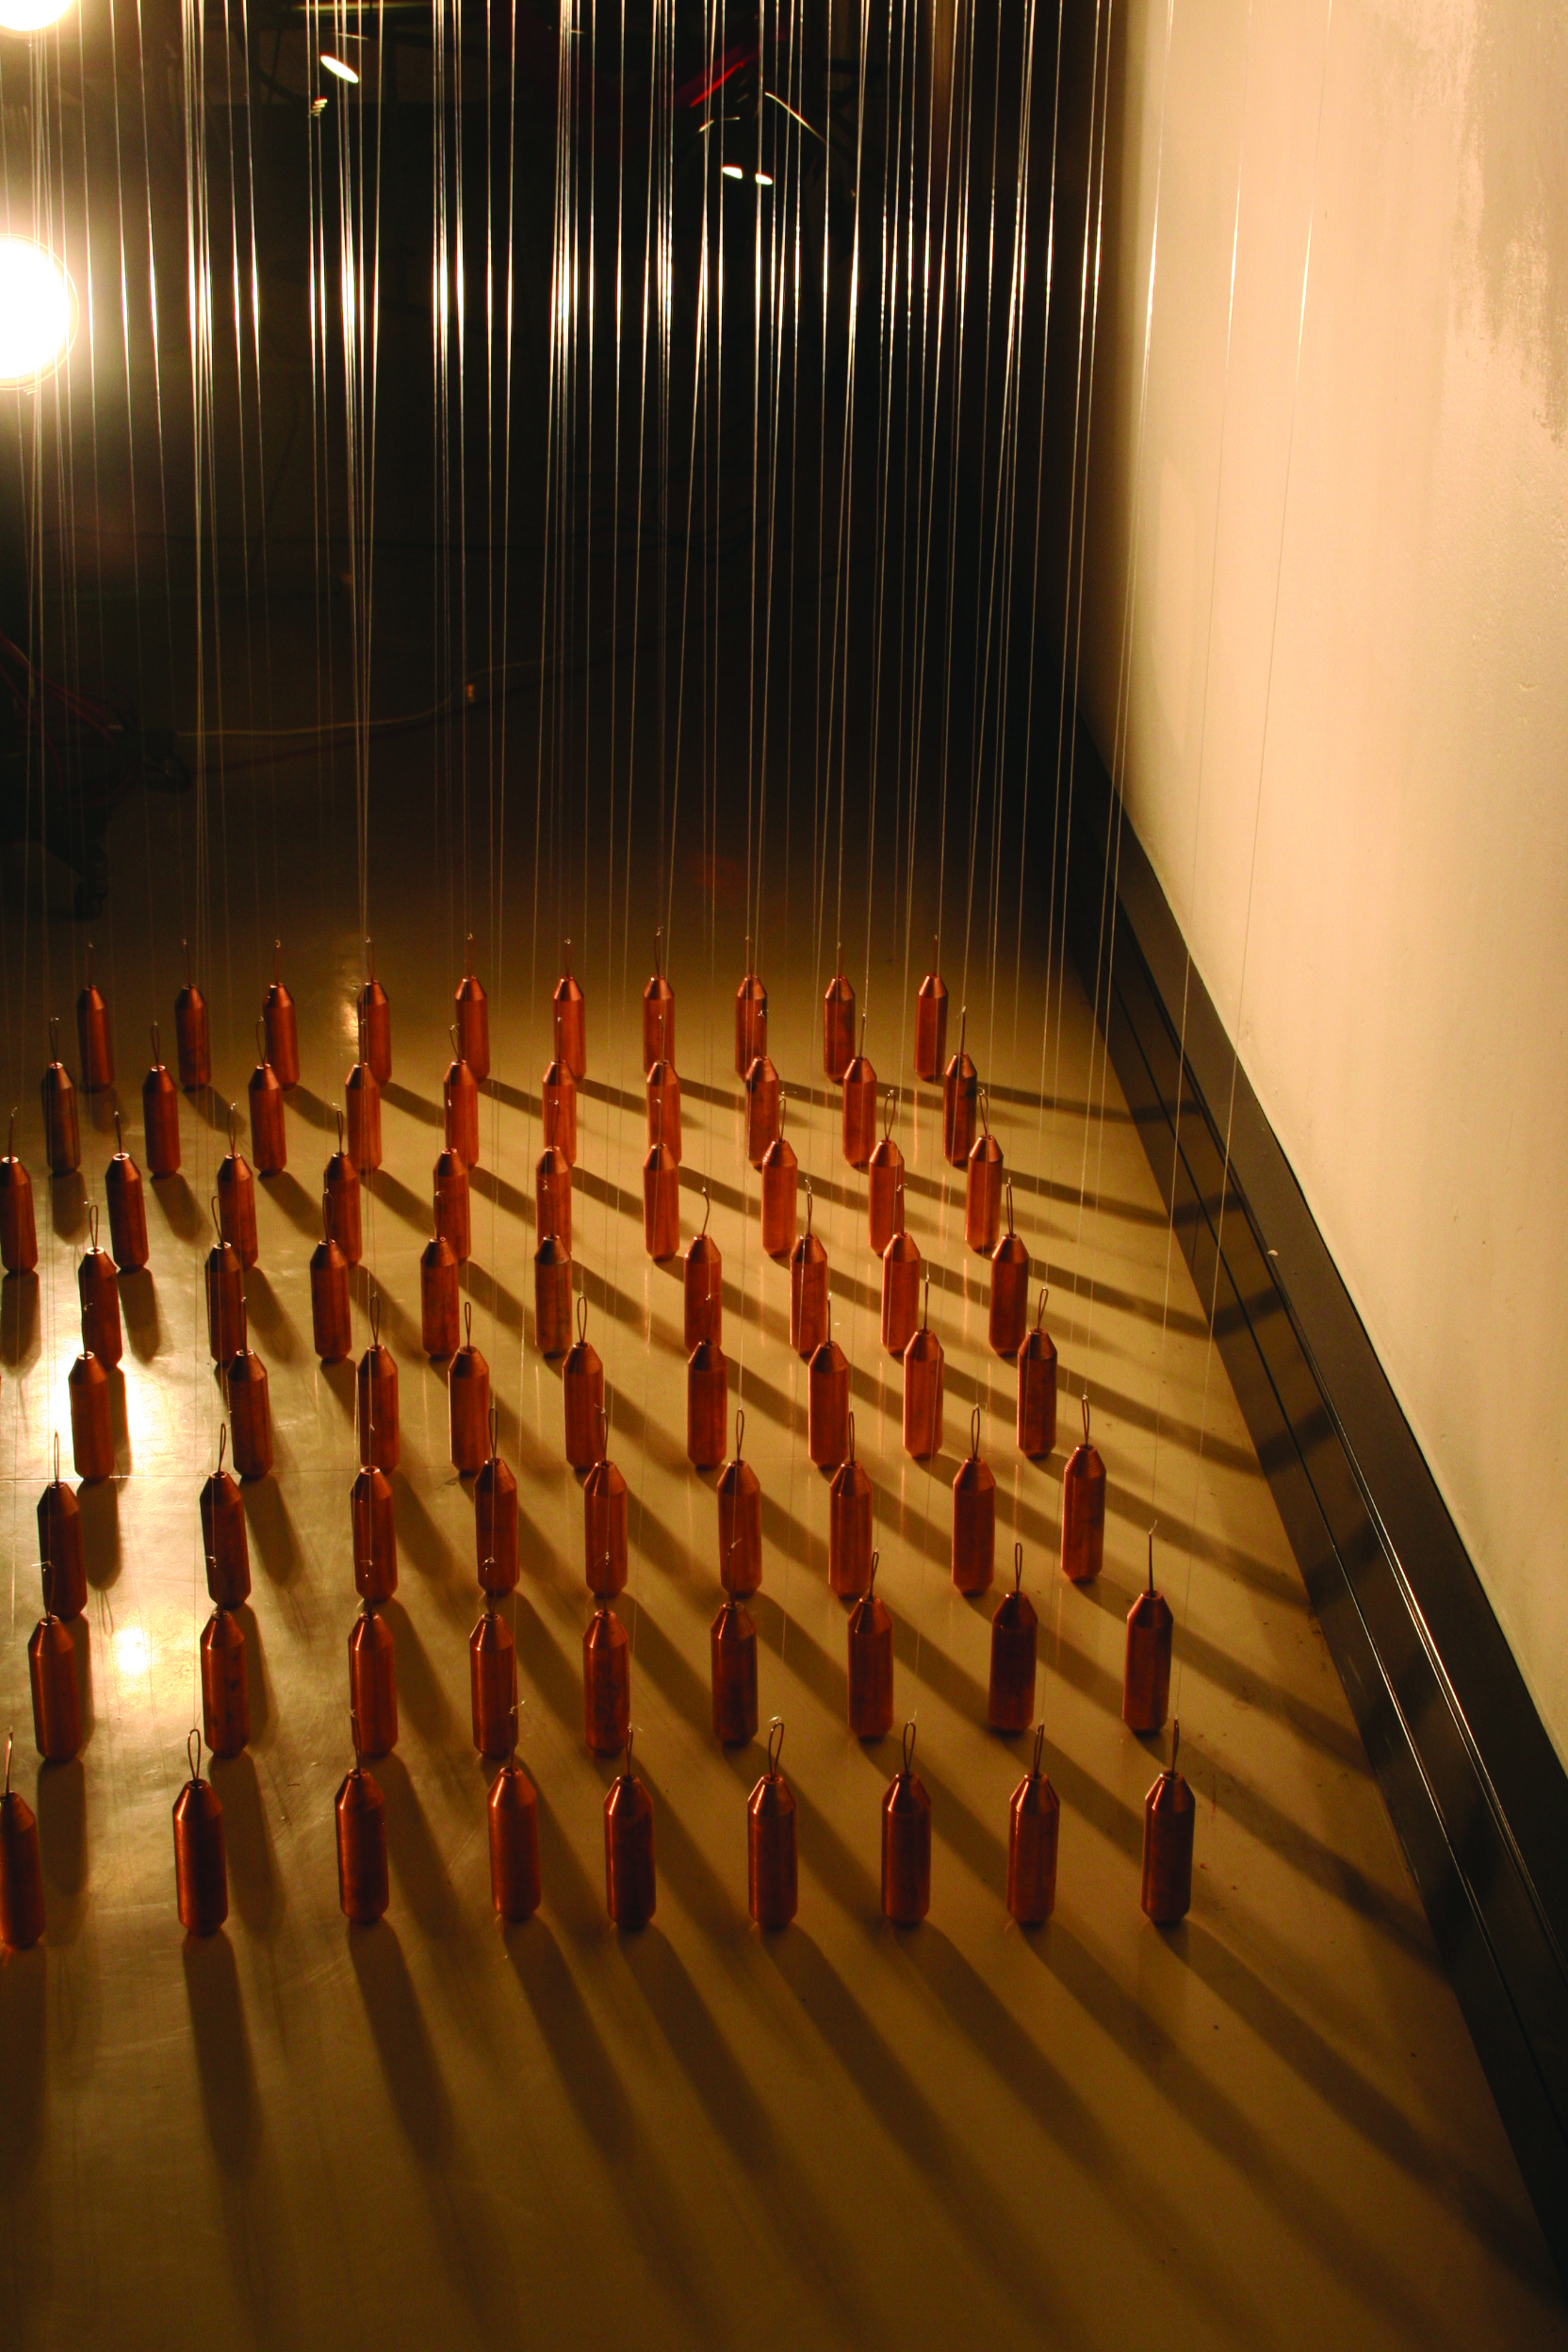 Bronwyn Lace_ Verticality, Height and Mass_ 2009_performance_installation (3).jpg